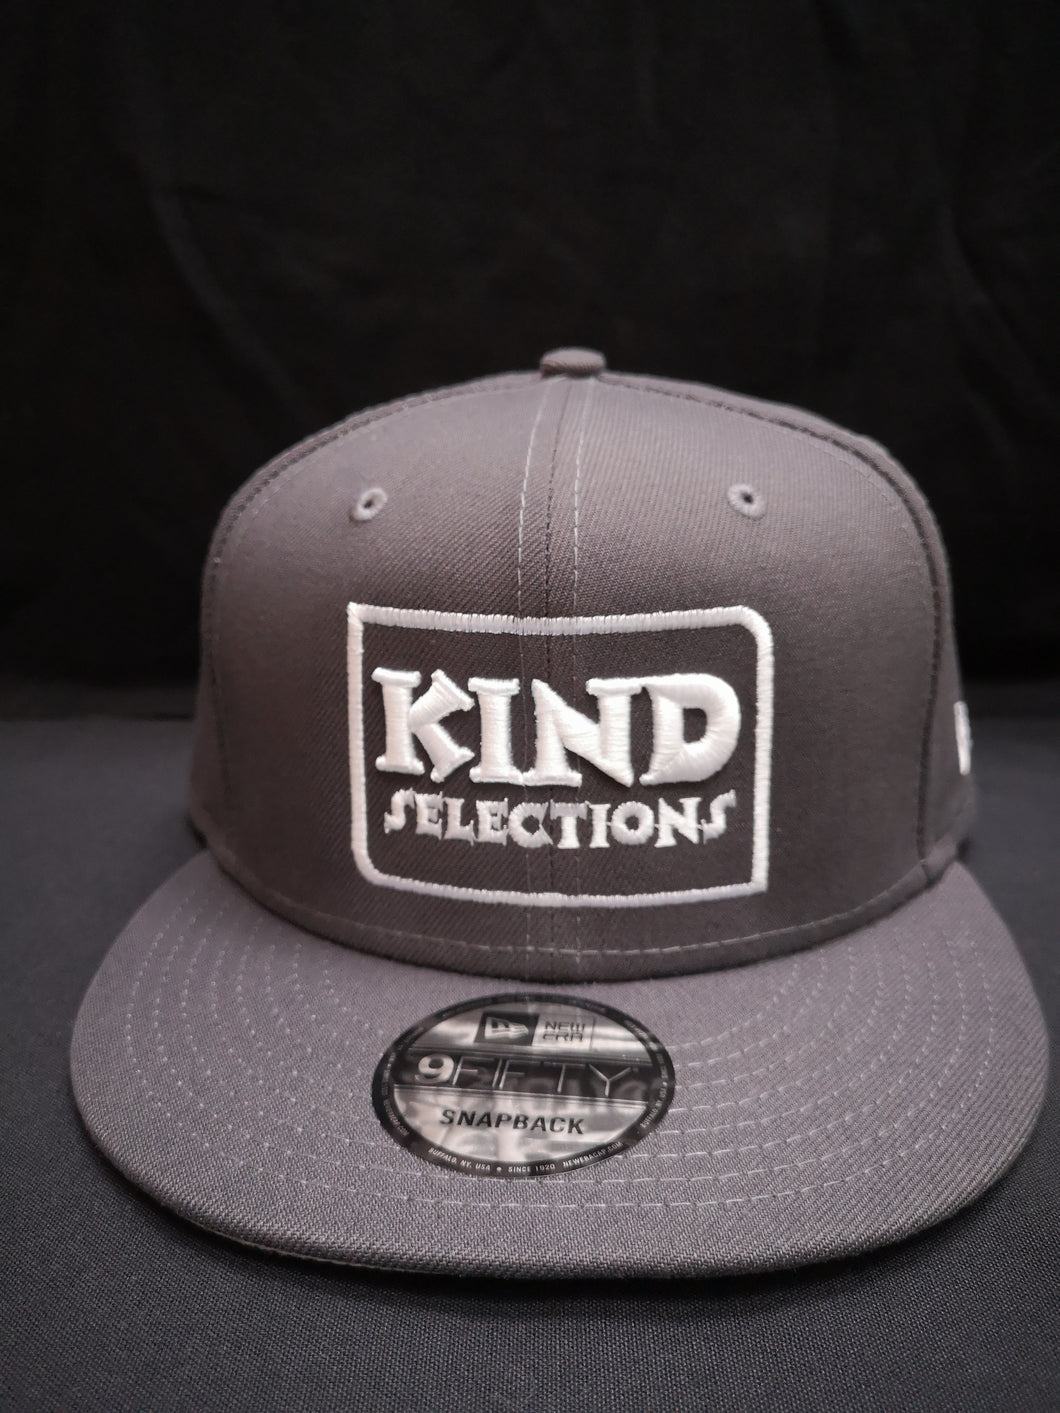 Kind Selections 9FIFTY Snapback Flat Billed - Gray